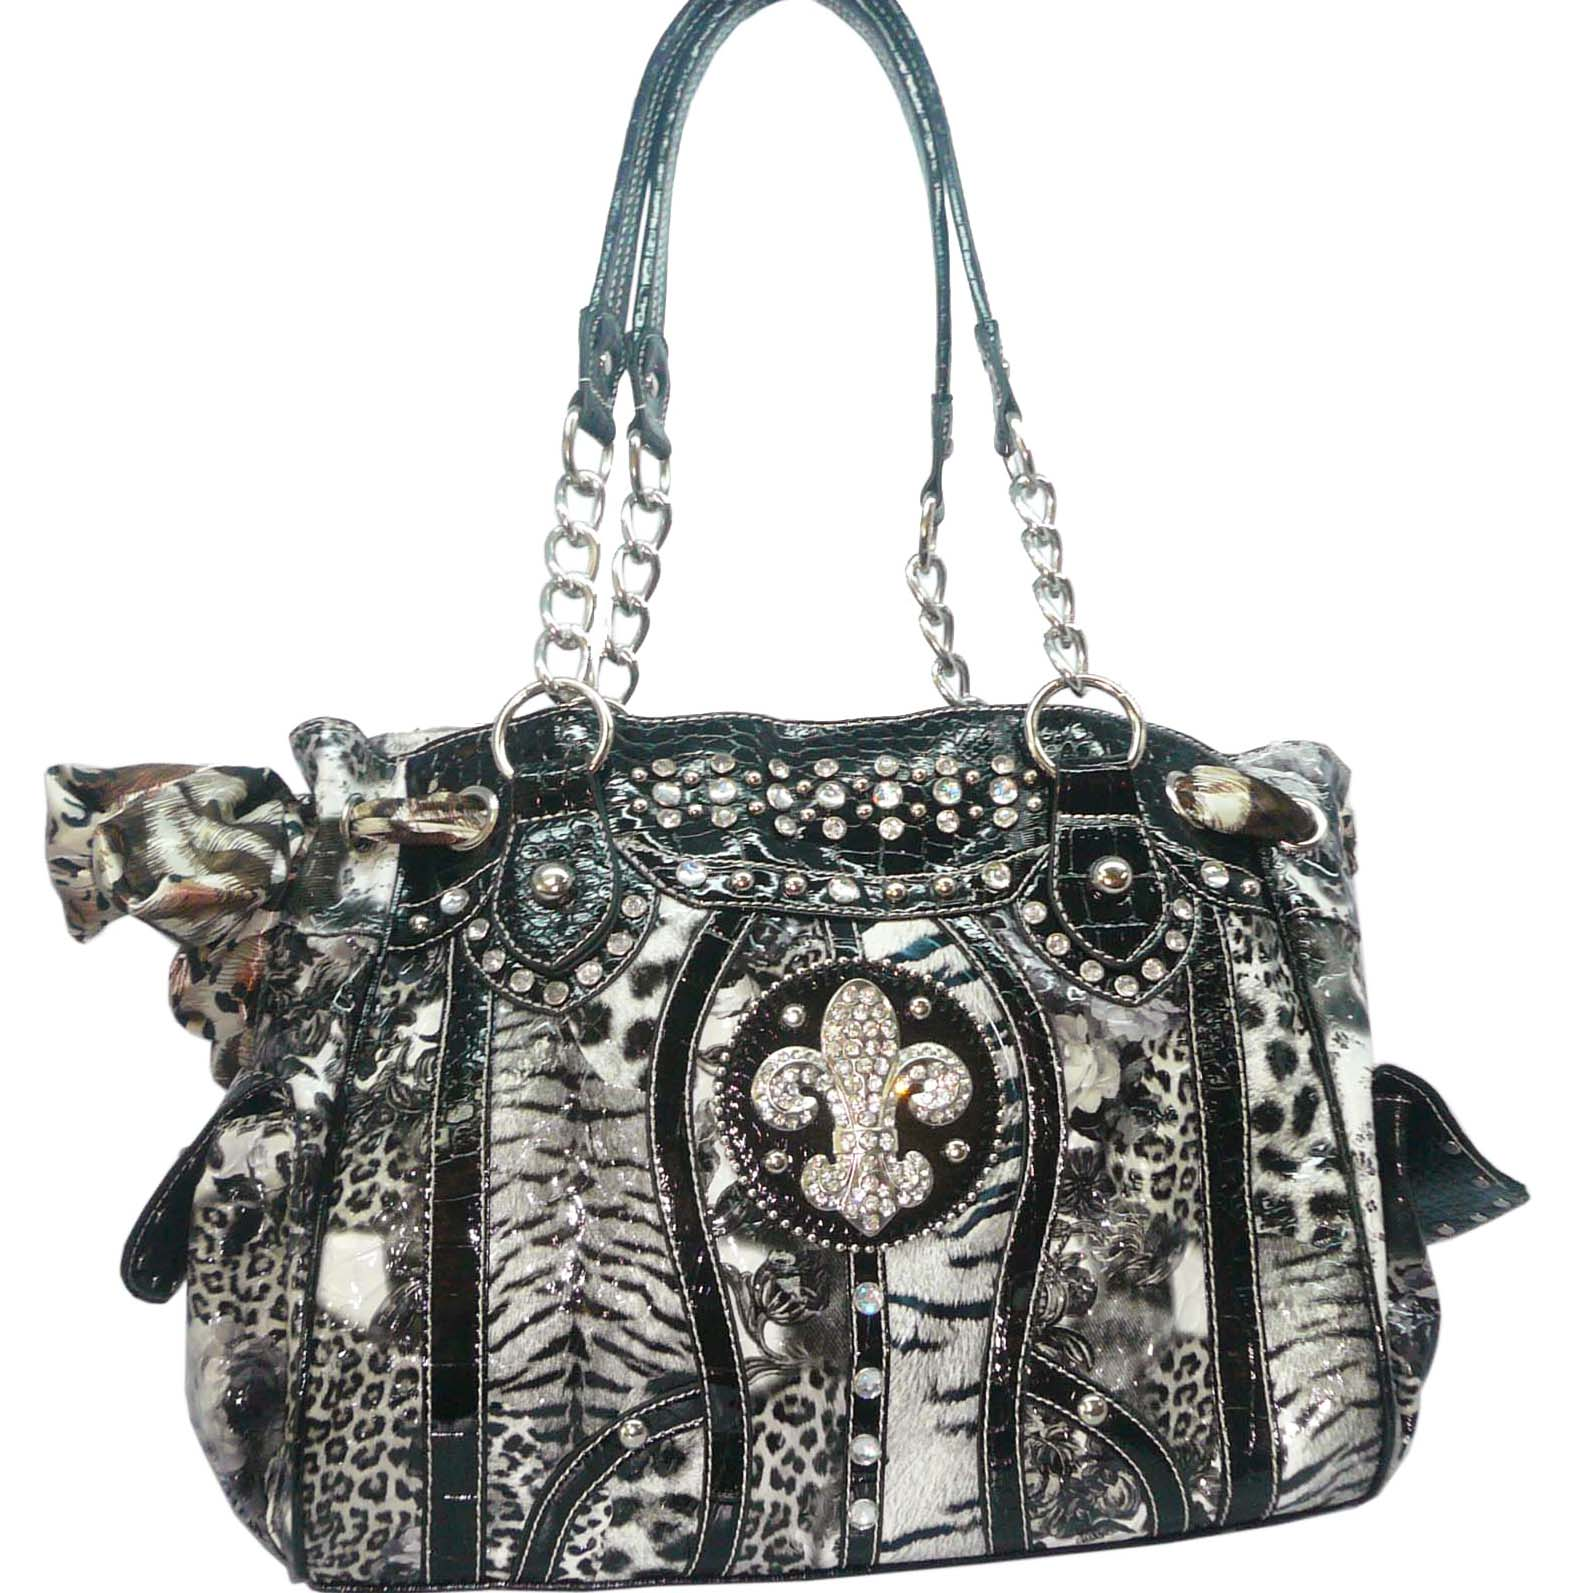 Animal Flower Print Tote Bag Handbag With Rhinestone Fleur de Lis